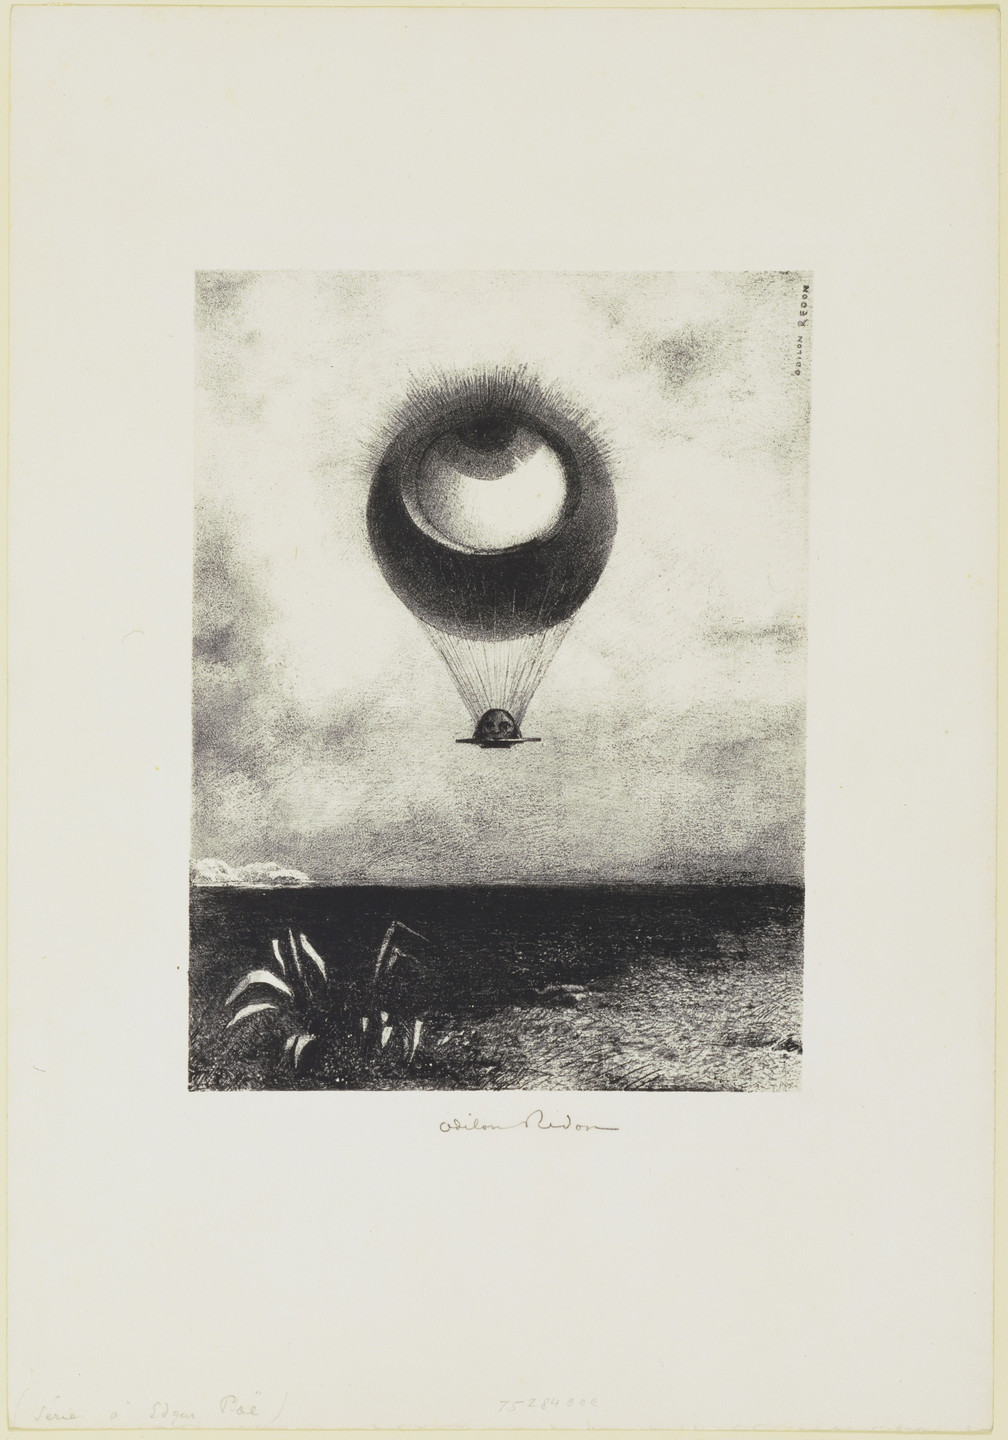 Odilon Redon. The Eye like a Strange Balloon Mounts toward Infinity (L'Œil, comme un ballon bizarre se dirige vers l'infini). 1882